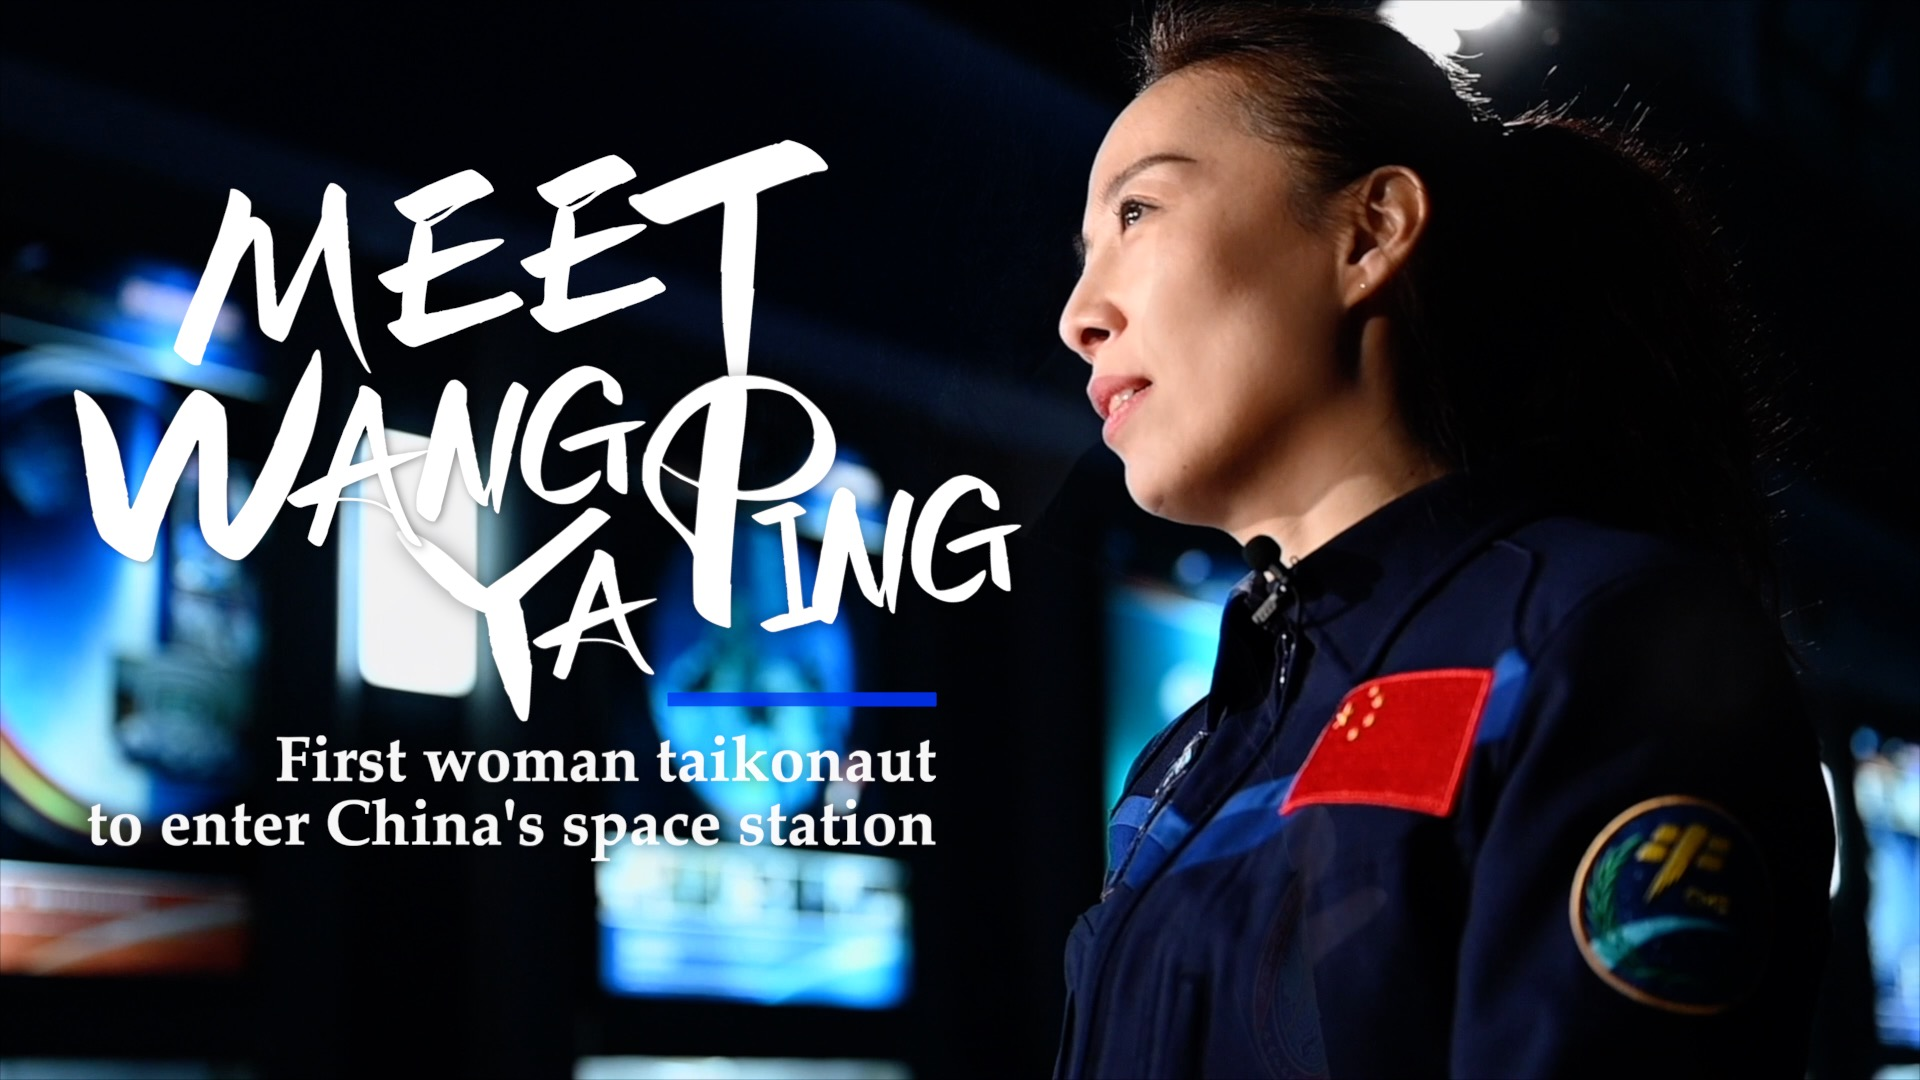 GLOBALink | Meet Wang Yaping, first woman taikonaut to enter China's space station